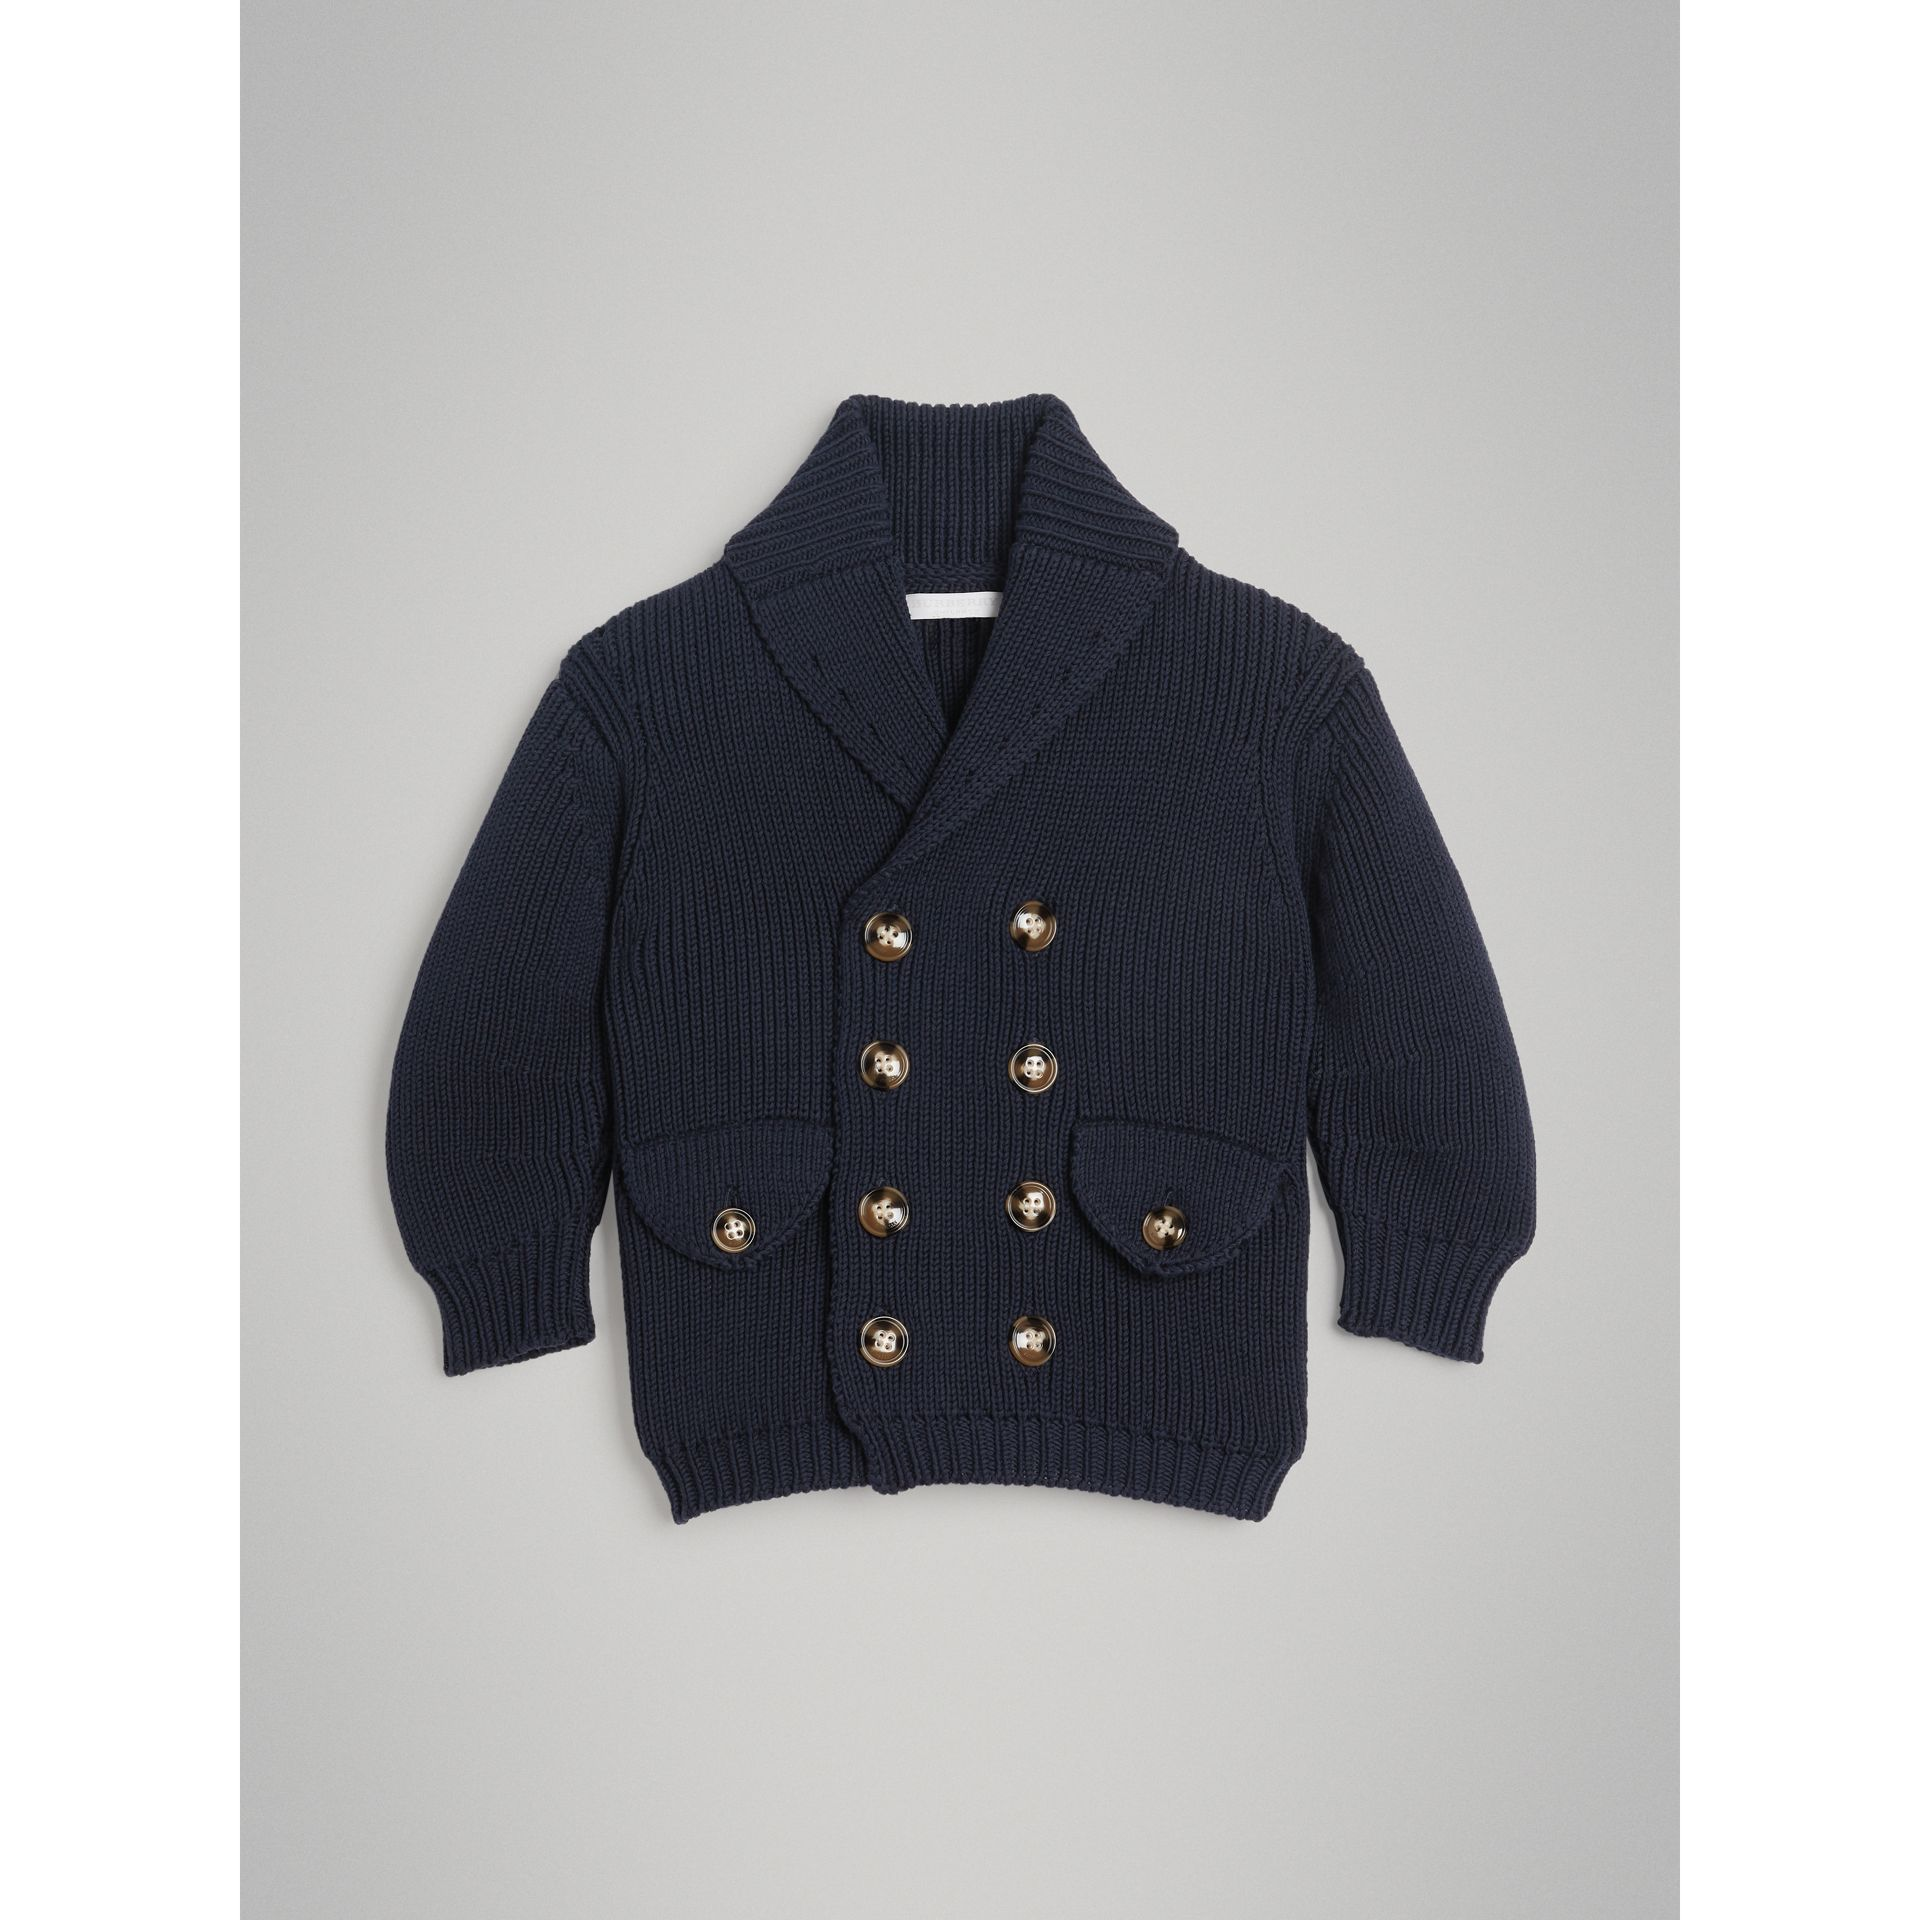 Cotton Knit Pea Coat Cardigan in Navy | Burberry United Kingdom - gallery image 0